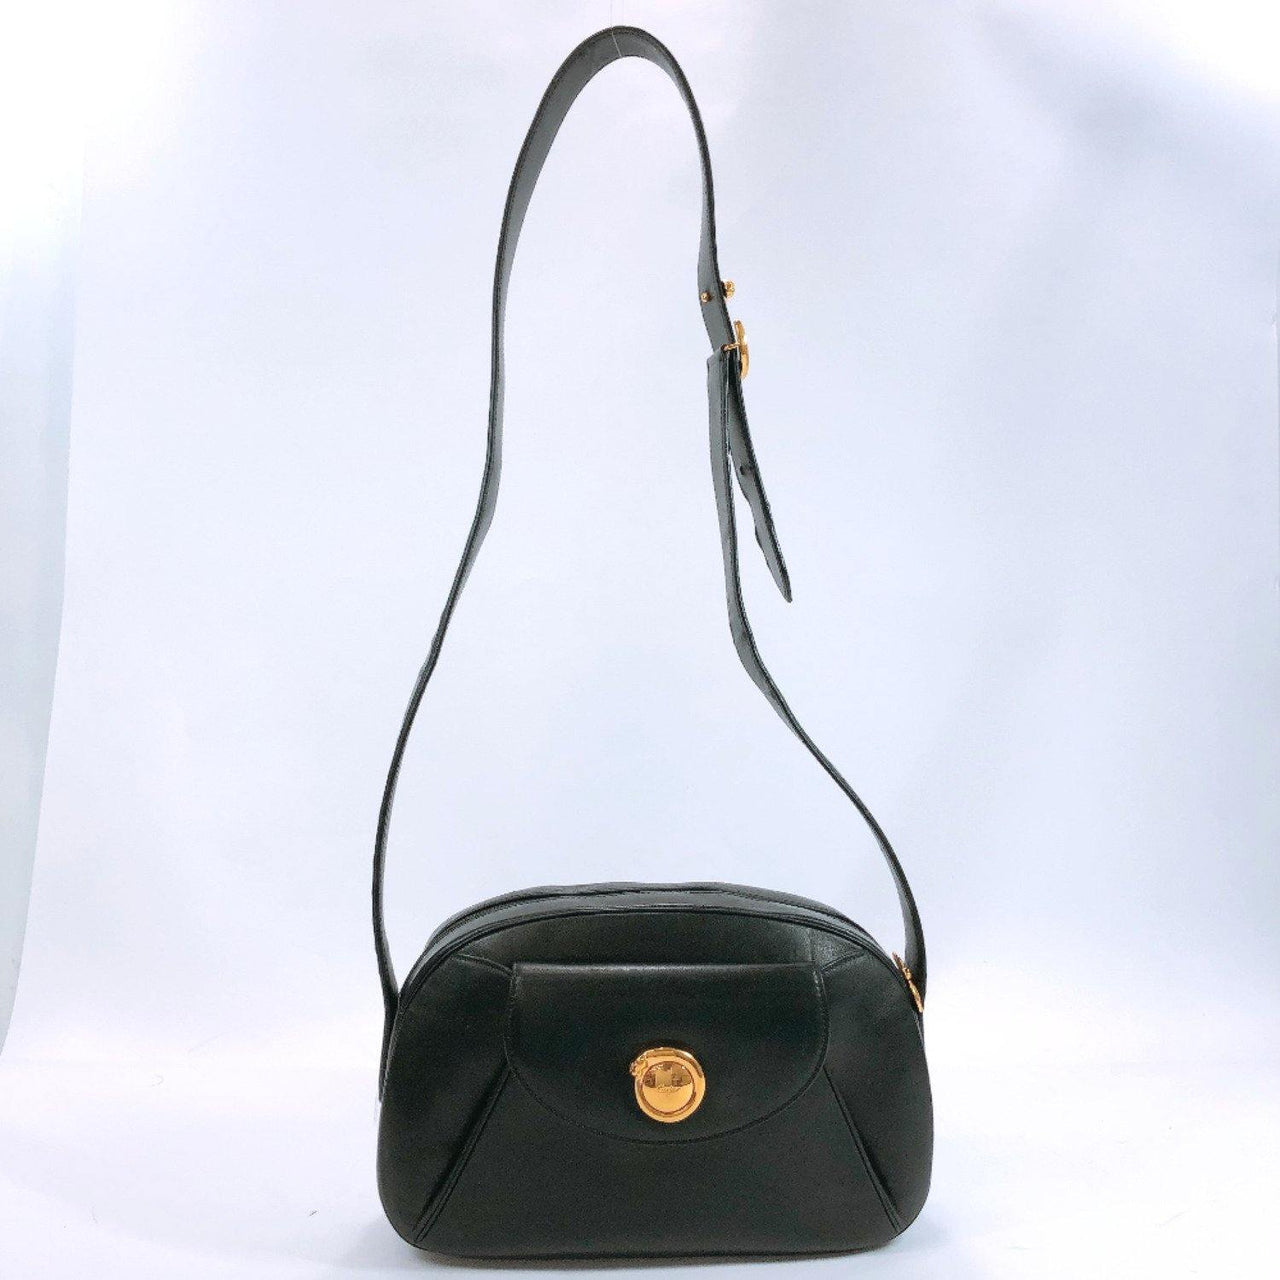 CARTIER Shoulder Bag PANTHERE leather black Gold Hardware Women Used - JP-BRANDS.com